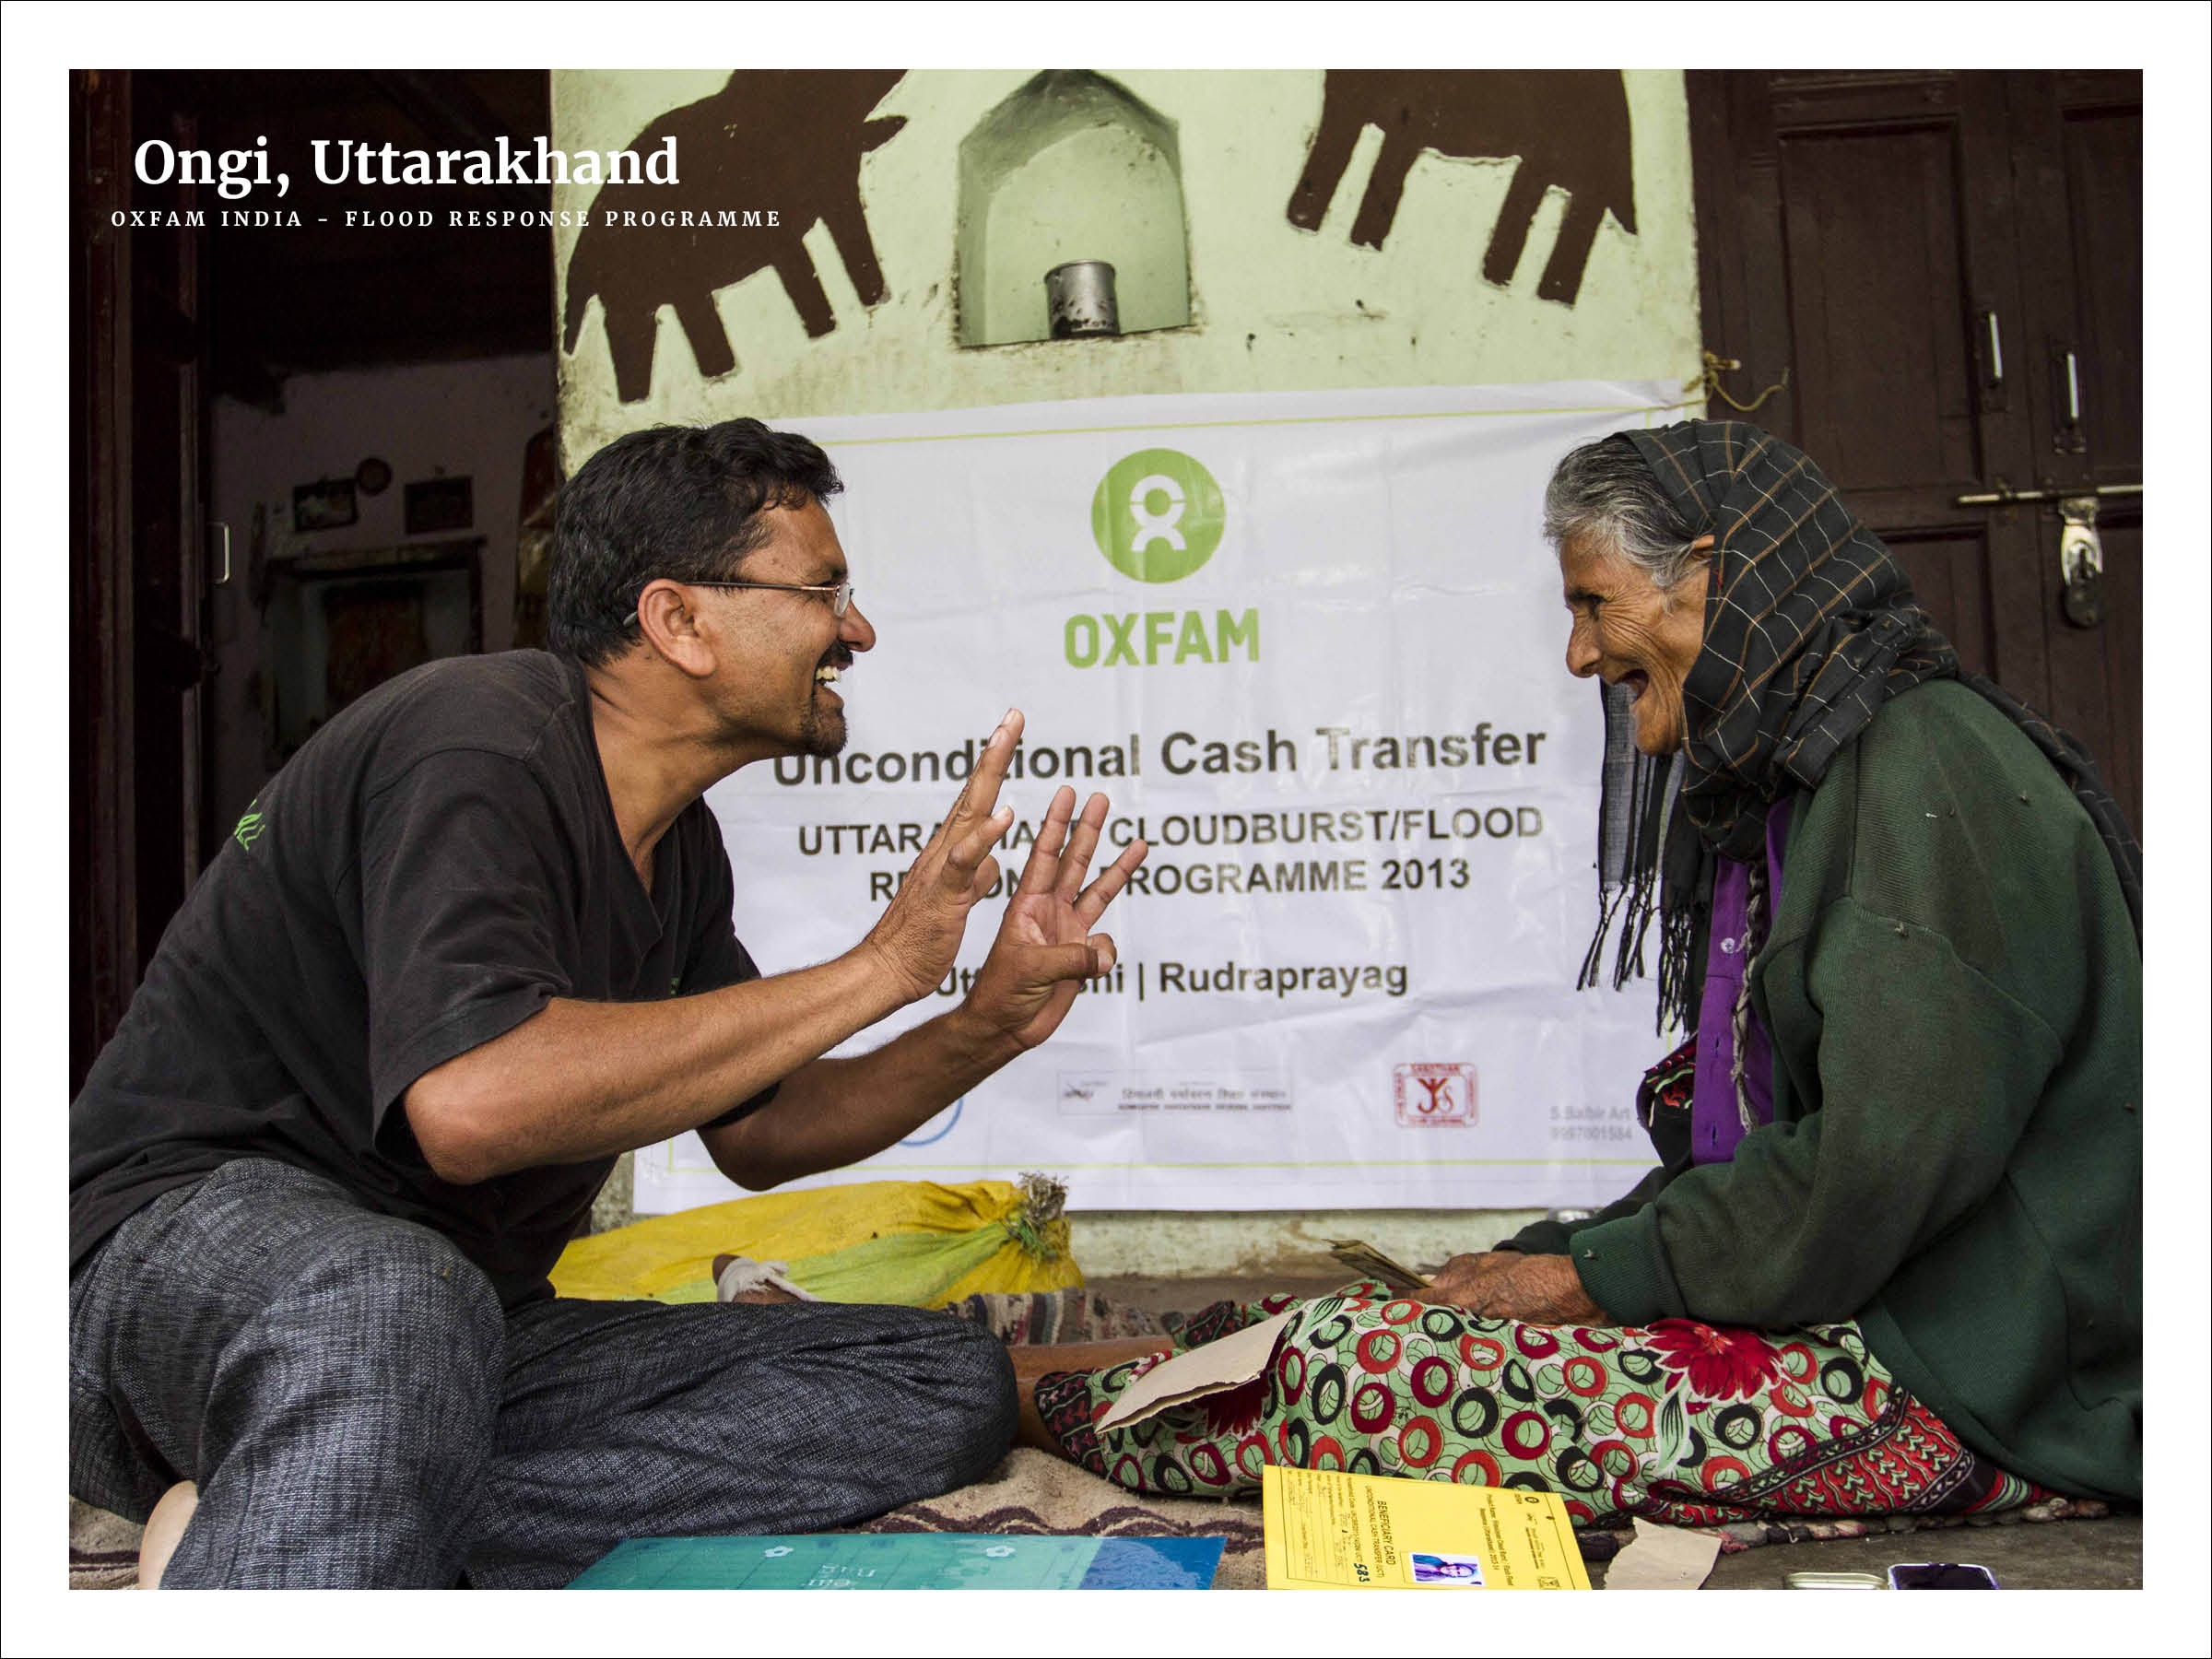 In the village of Ongi, Uttarkashi district, Oxfam programme officer, Narshi Bhimani visits Sundri Devi (95)   Oxfam India - Uttarakhand Cloud Burst and Flood Response Programme